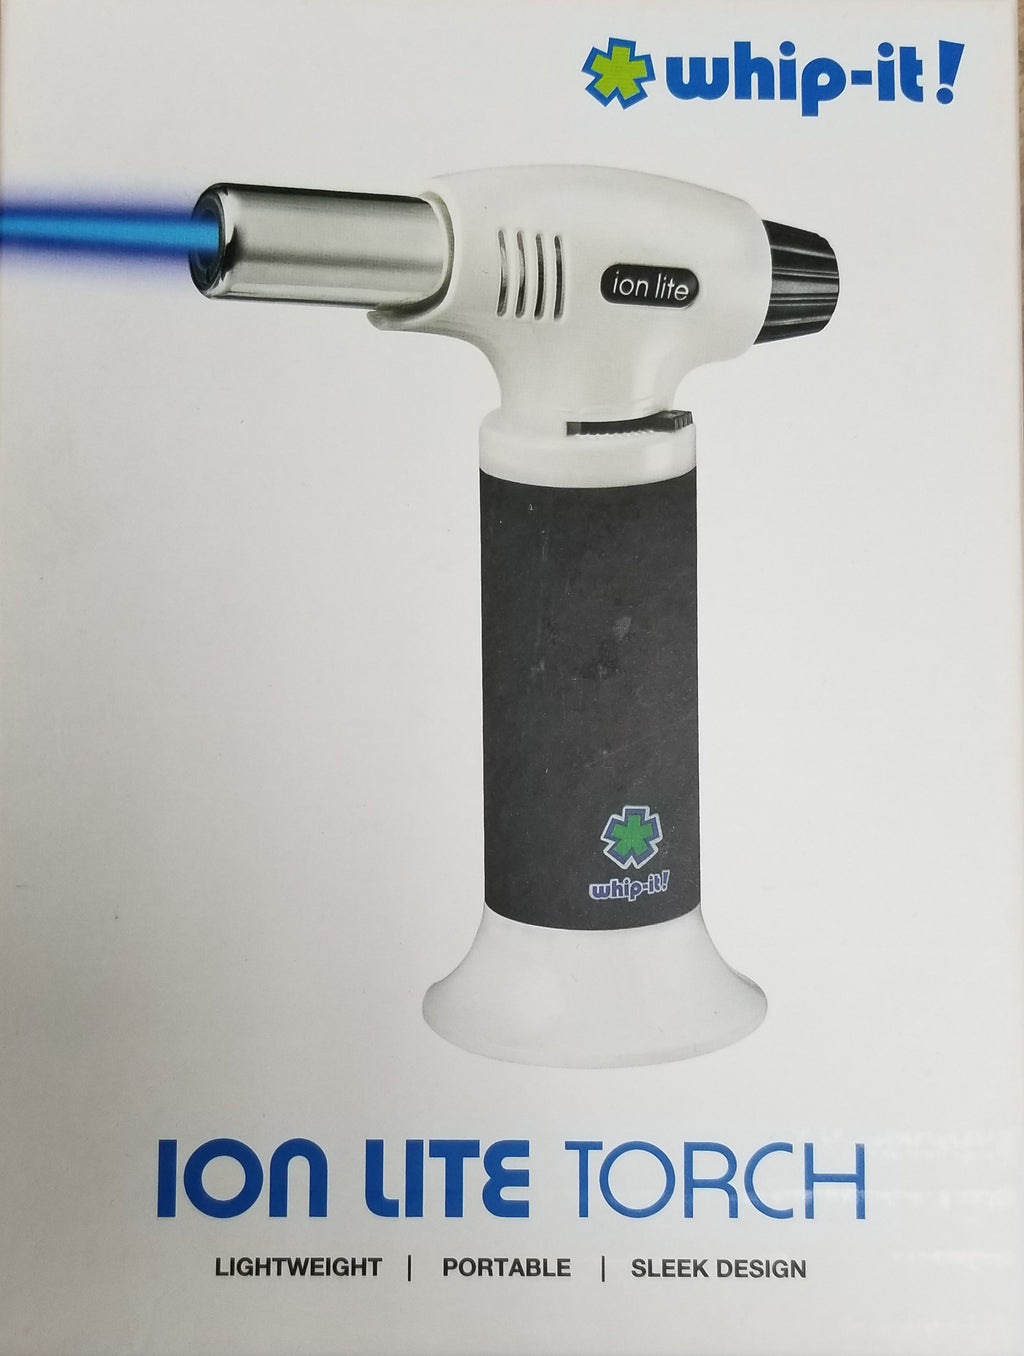 Ion Lite Whip-it torch